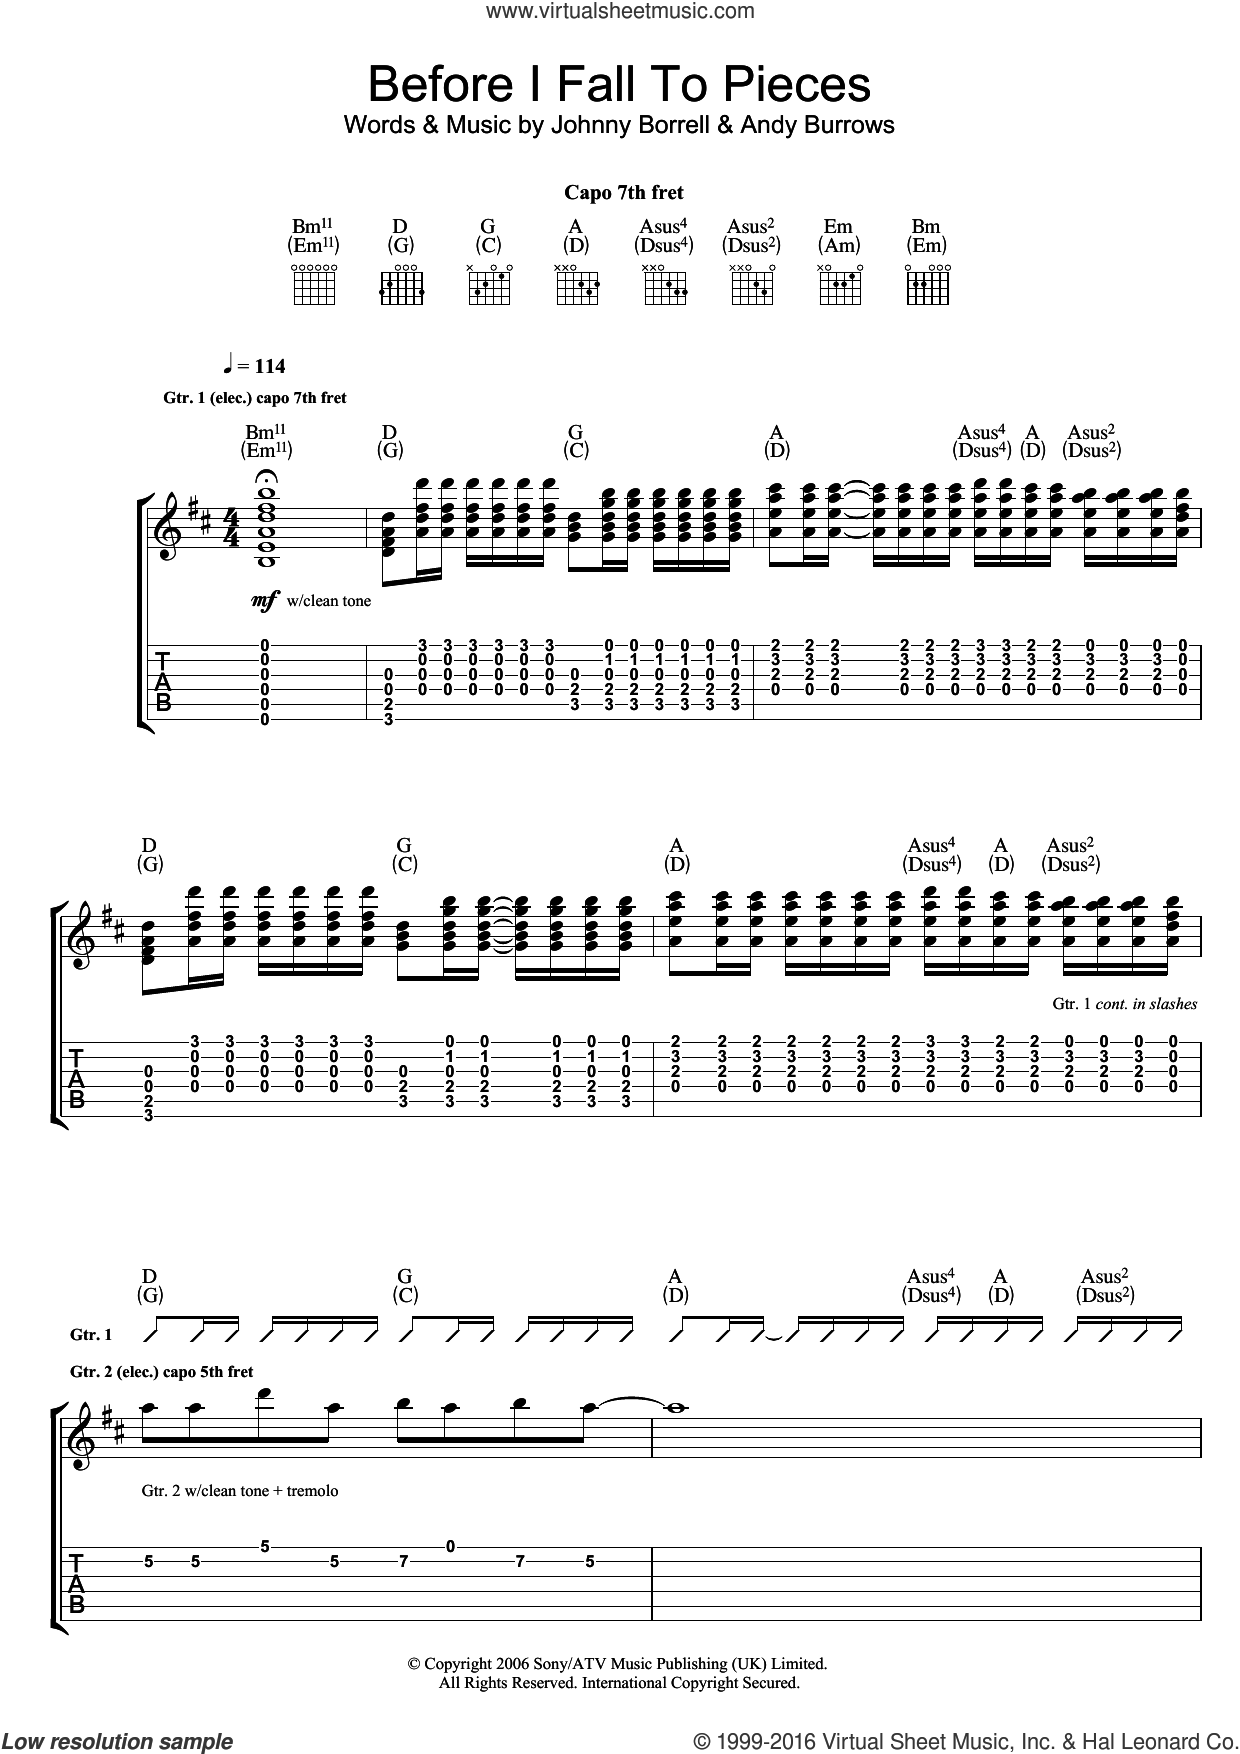 Before I Fall To Pieces sheet music for guitar (tablature) by Andy Burrows